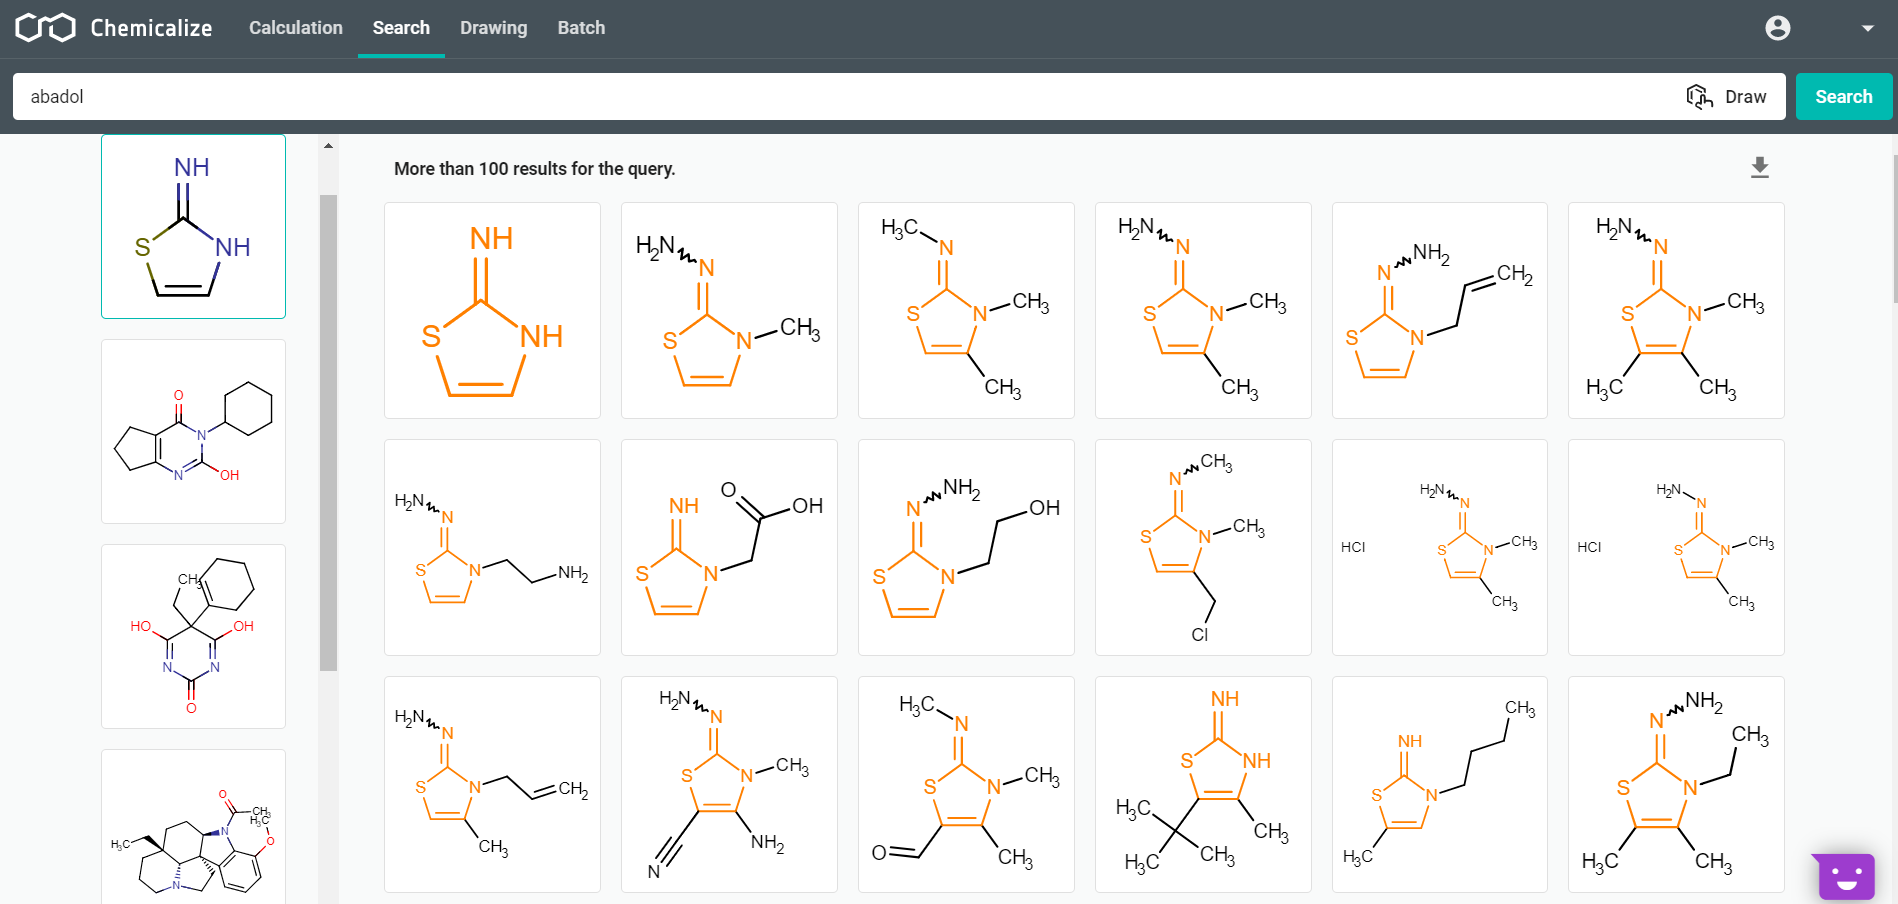 Substructure Search in Chemicalize's public molecule library